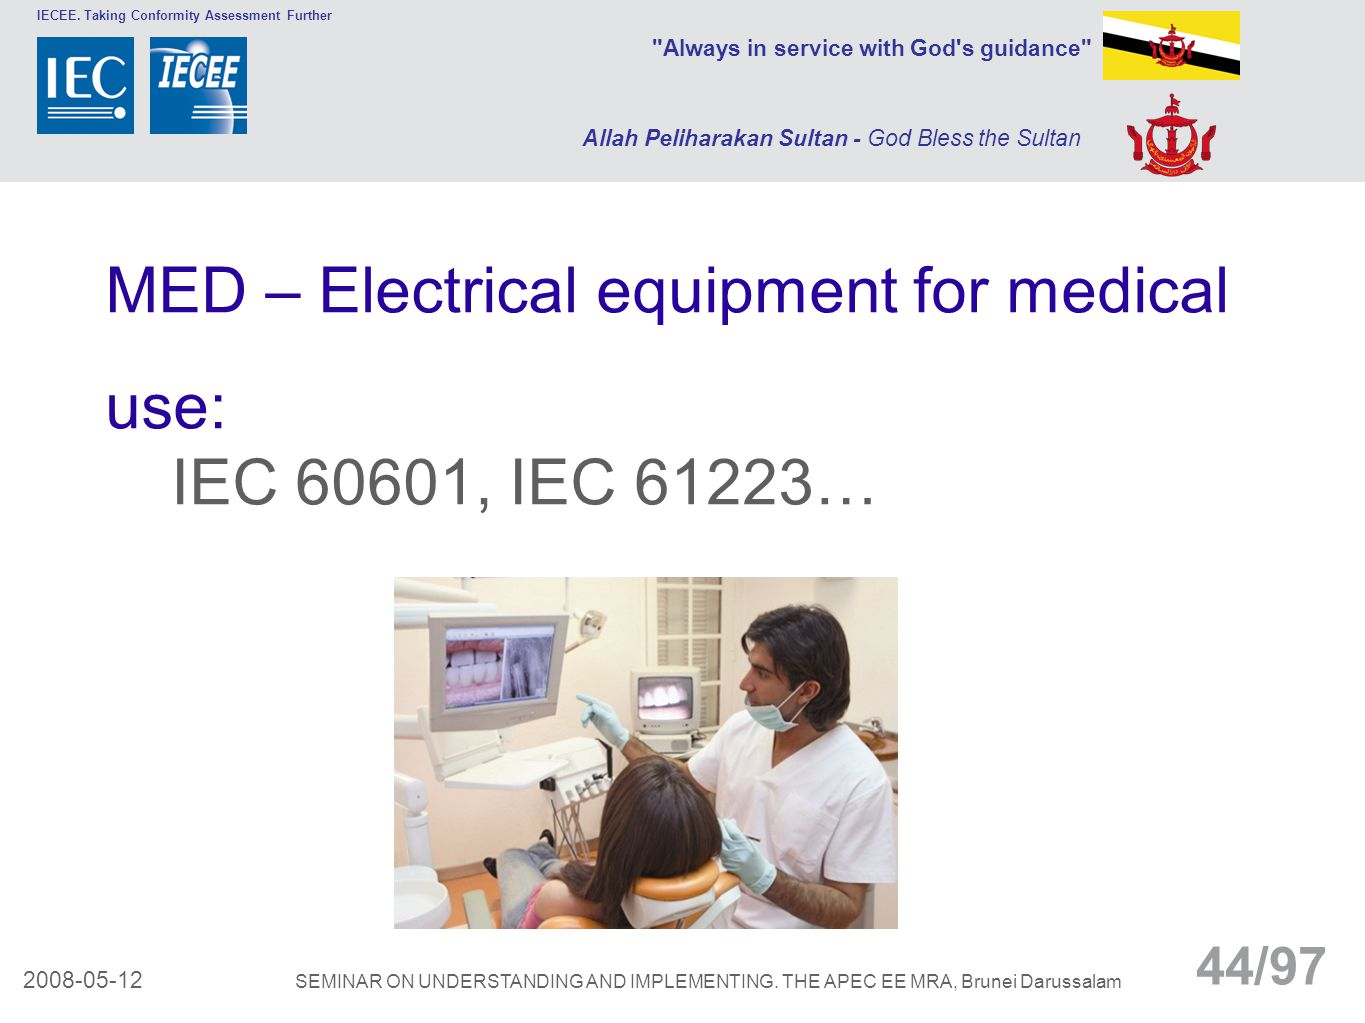 MED – Electrical equipment for medical use: IEC 60601, IEC 61223…